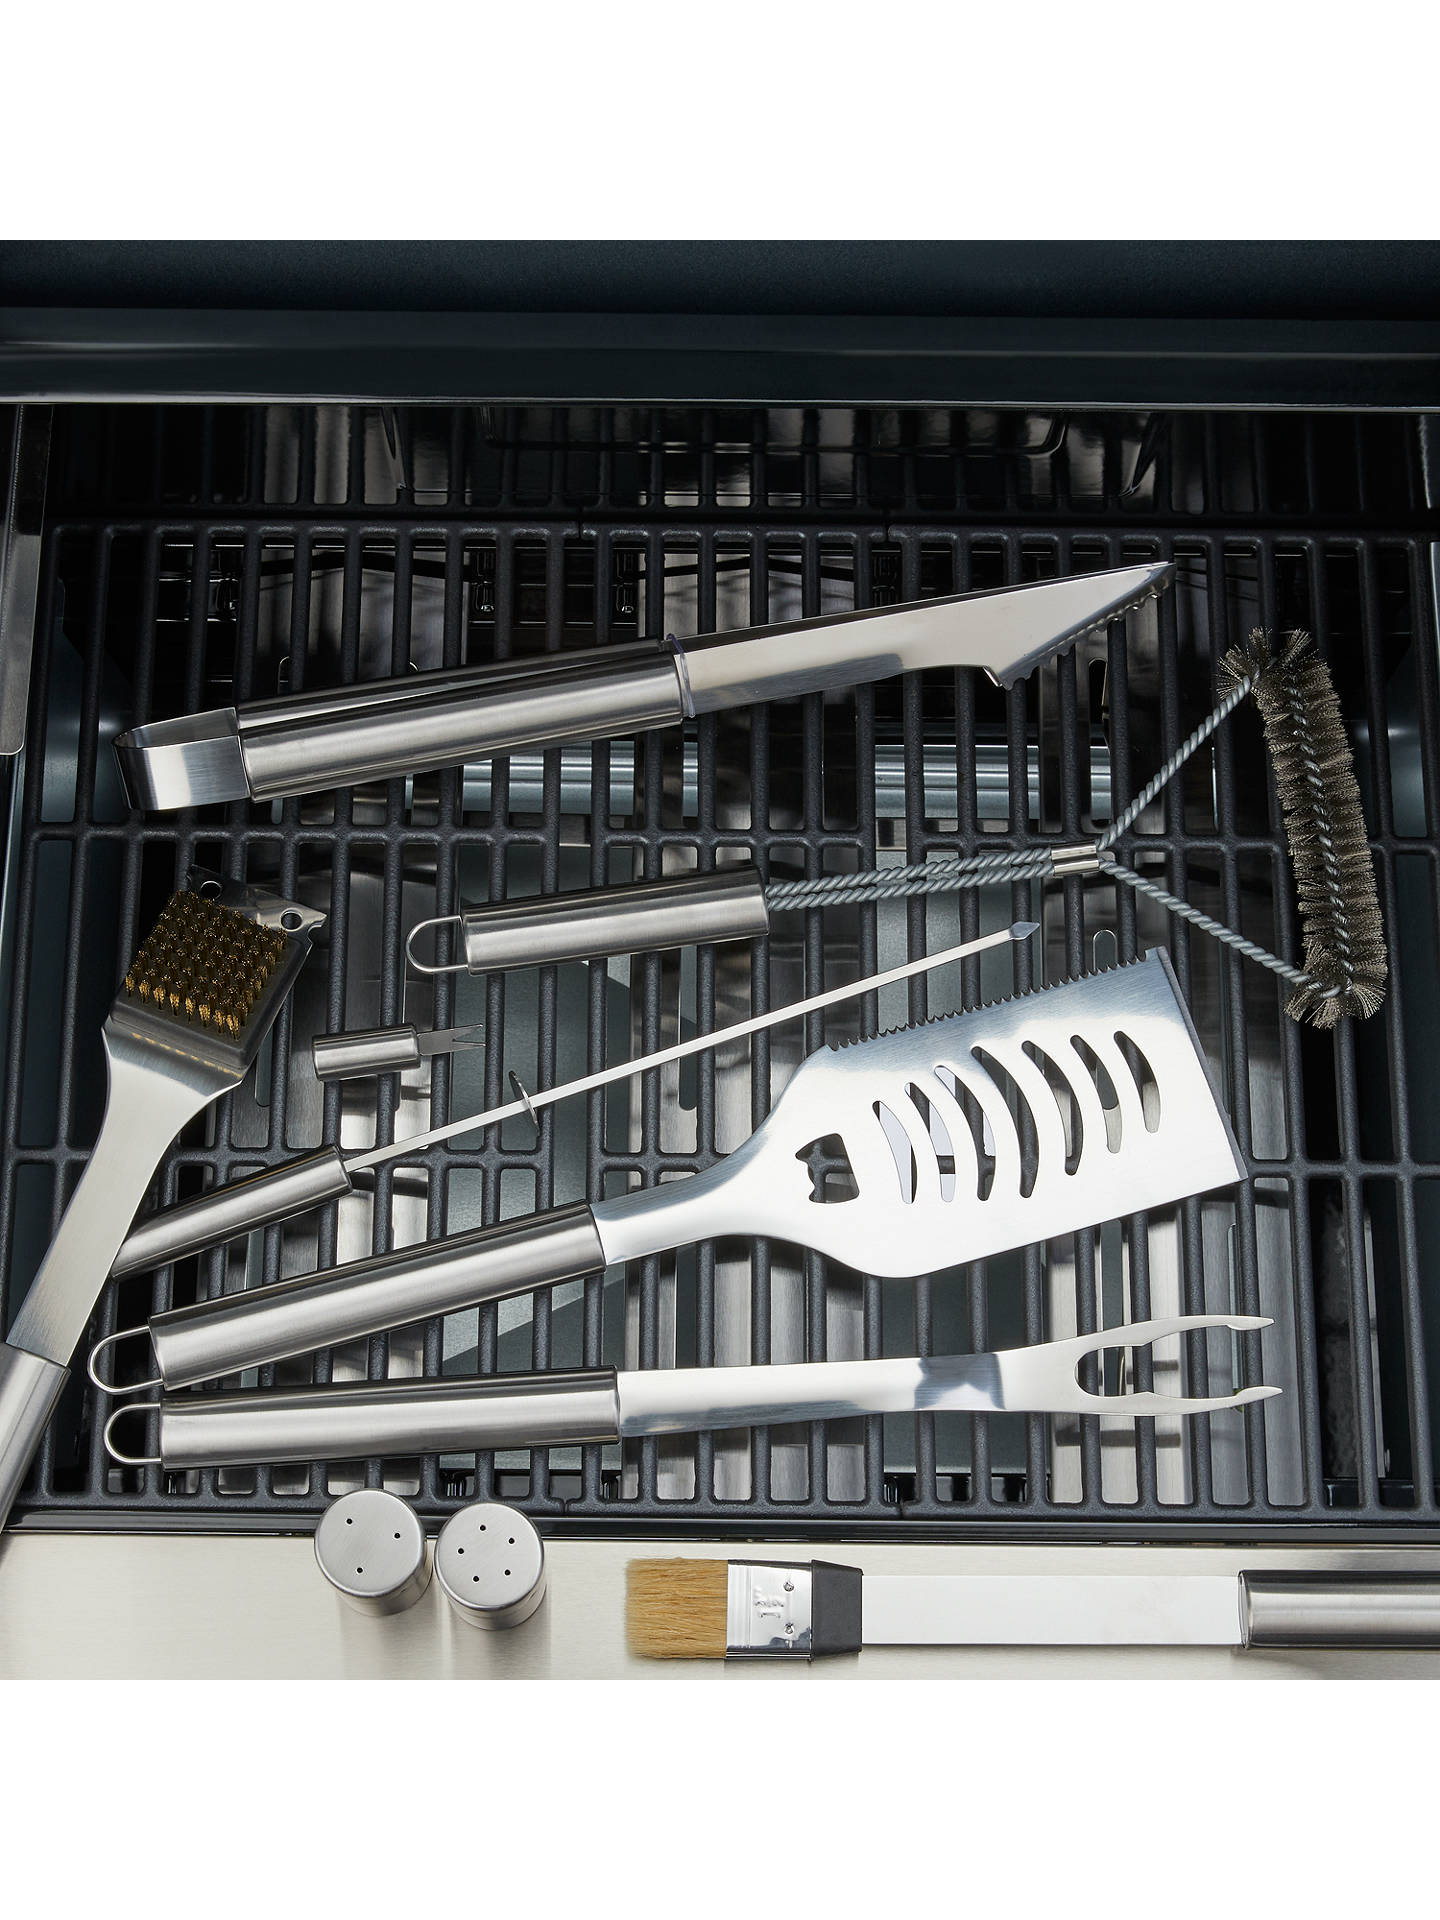 Buy John Lewis & Partners Stainless Steel BBQ Tool Set in Case, 24 Pieces Online at johnlewis.com